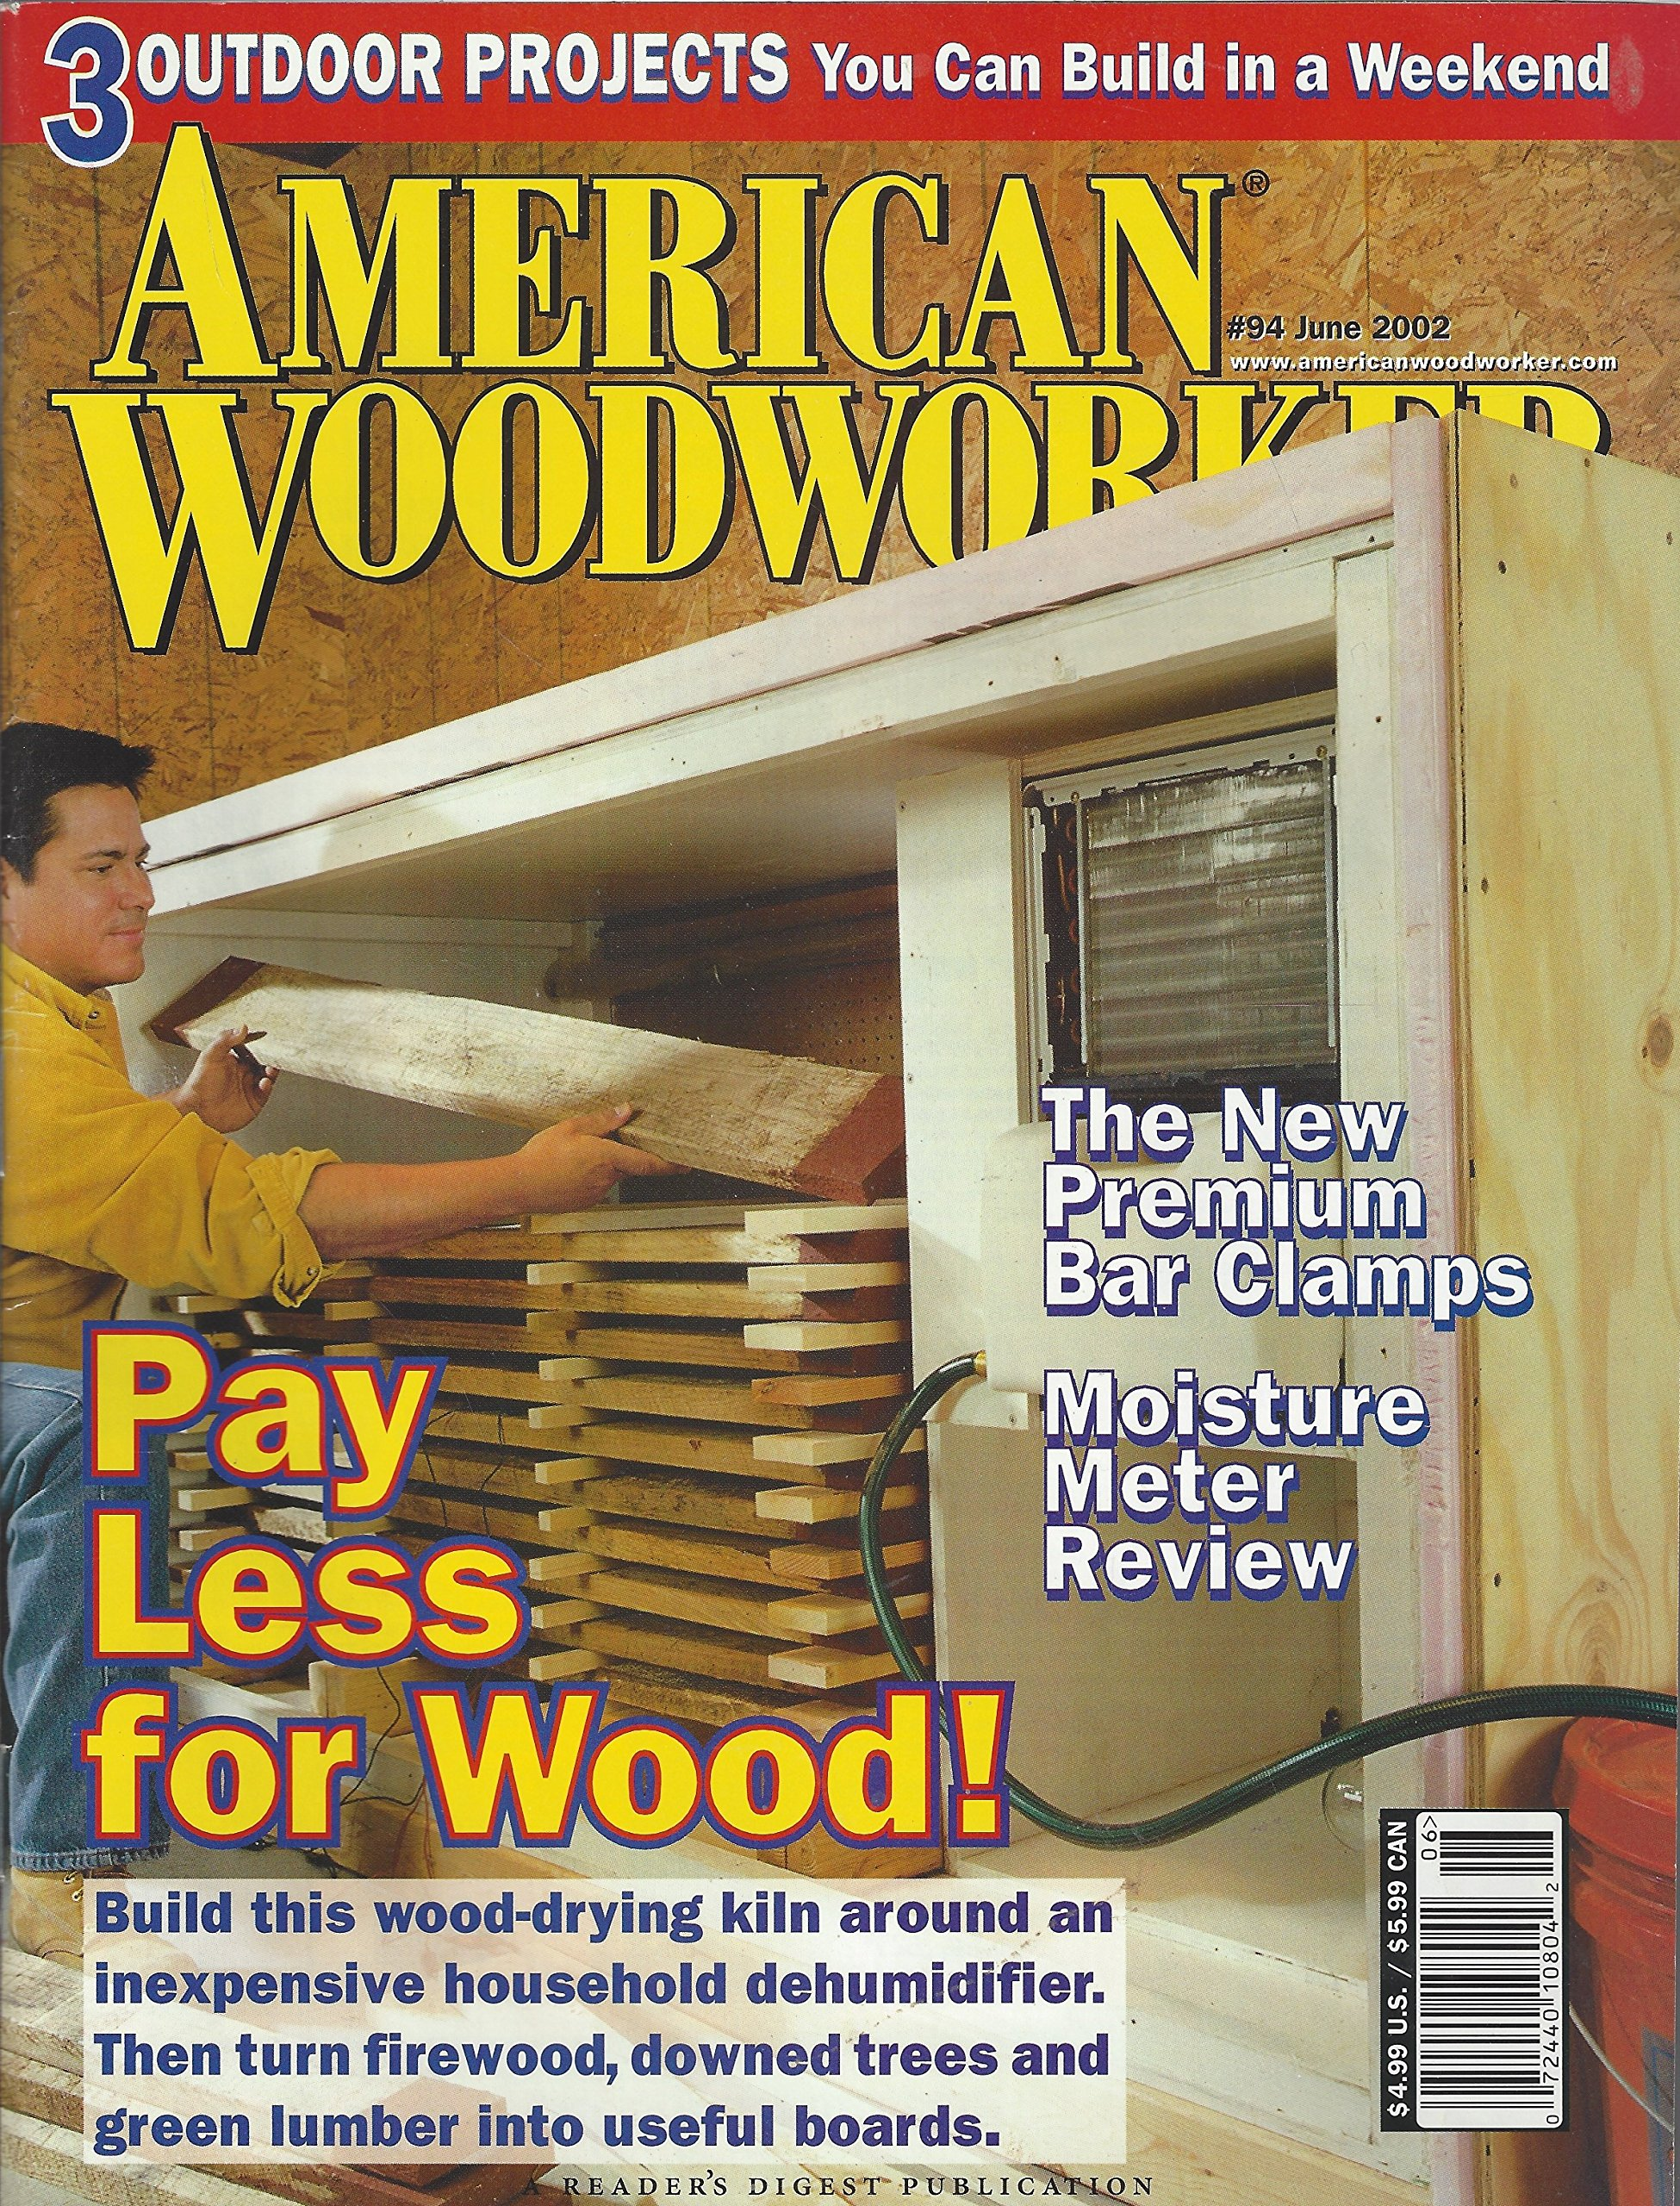 American Woodworker June 2002 (#94) pdf